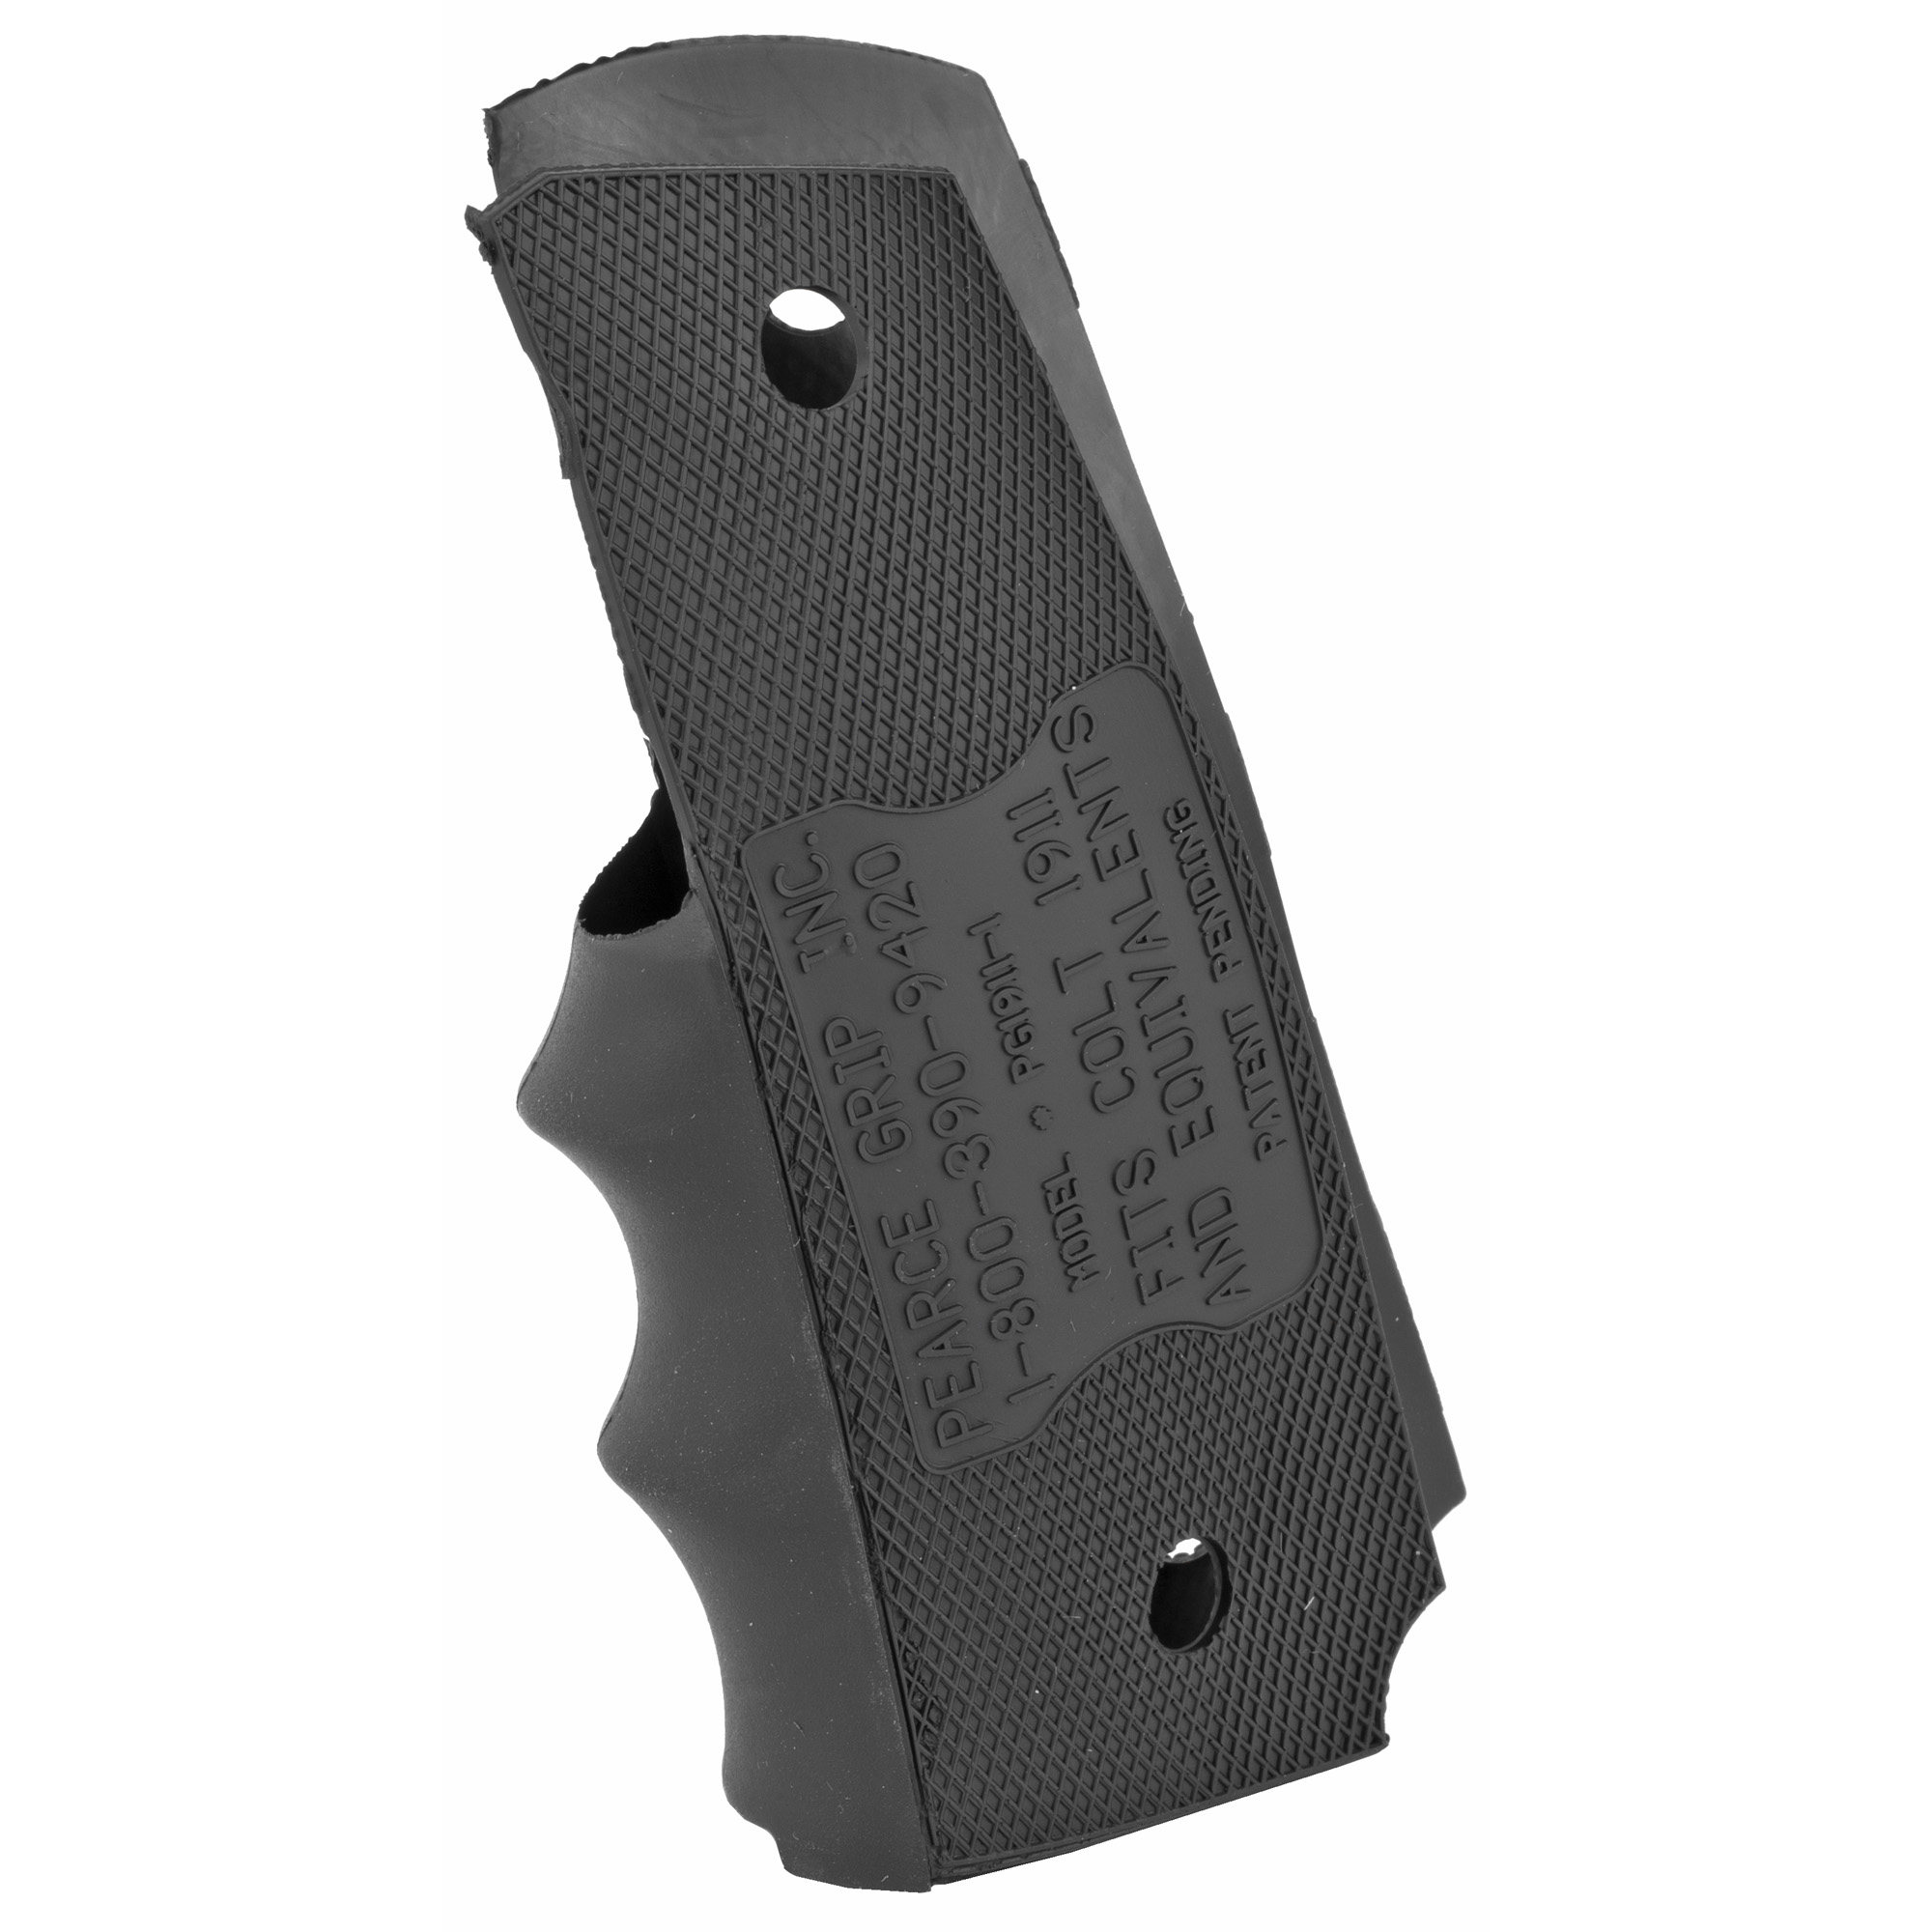 This product fits under any government model 1911 side panel grip adding rubber finger grooves for comfort and better handling.